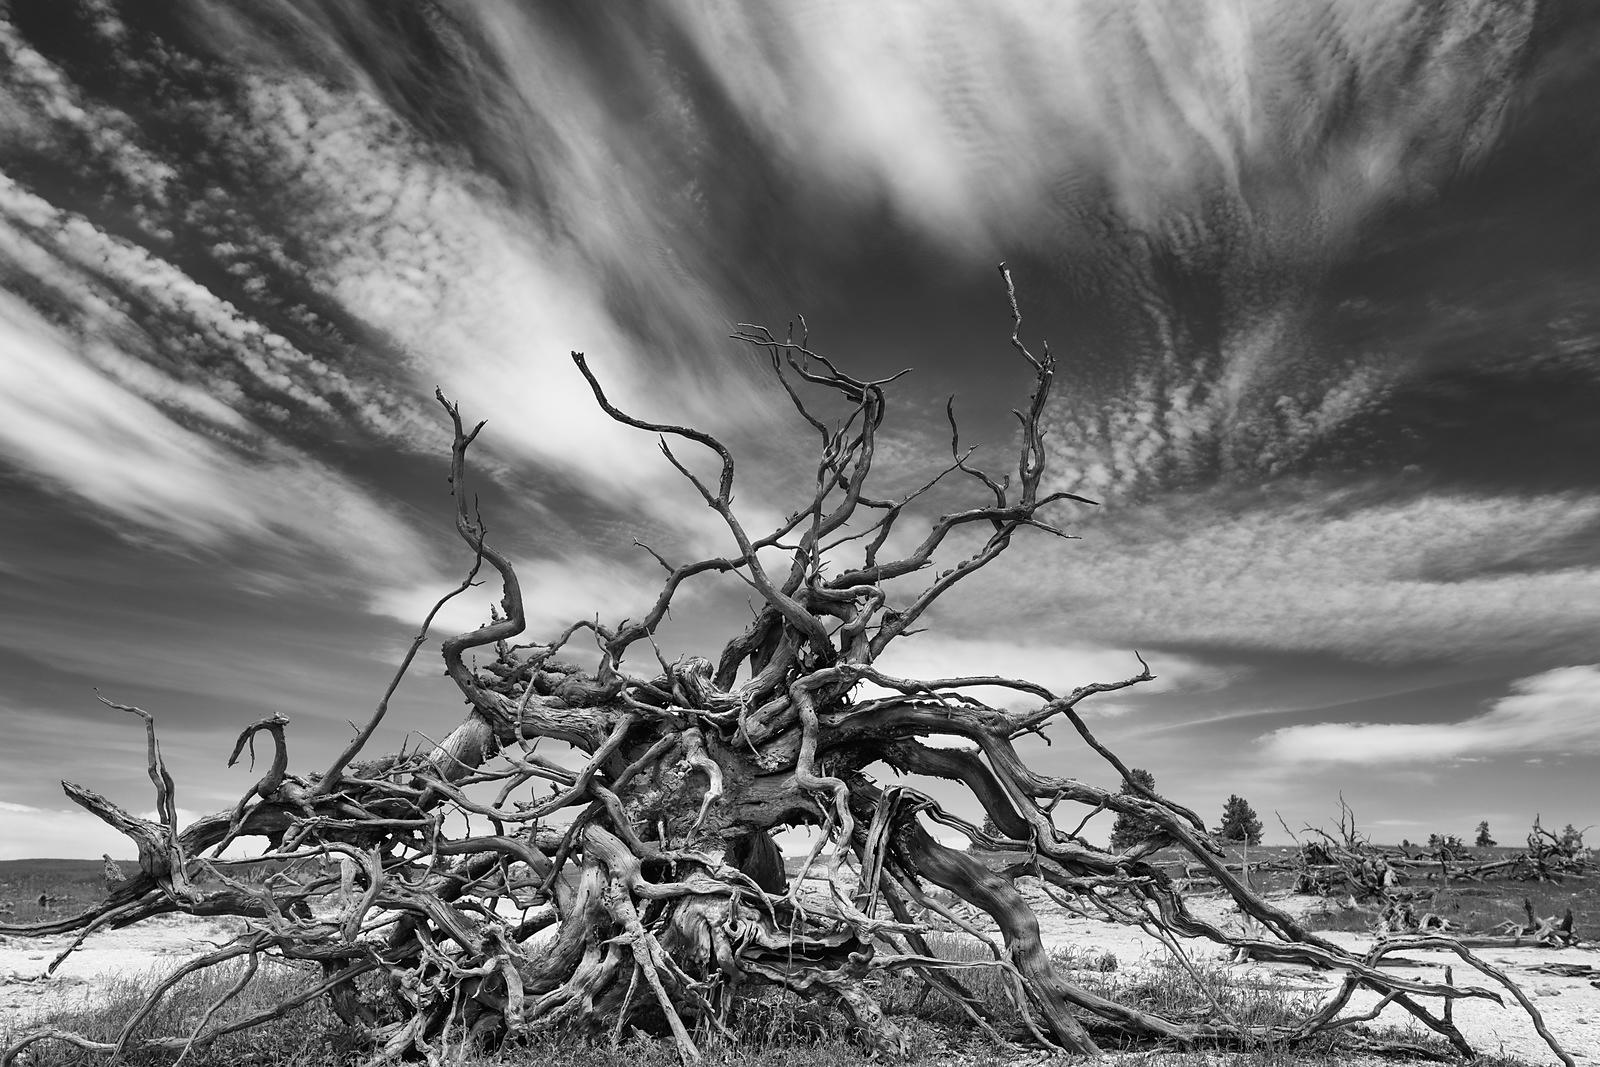 Yellowstone-River-Group-Tree-Roots-BW-1795